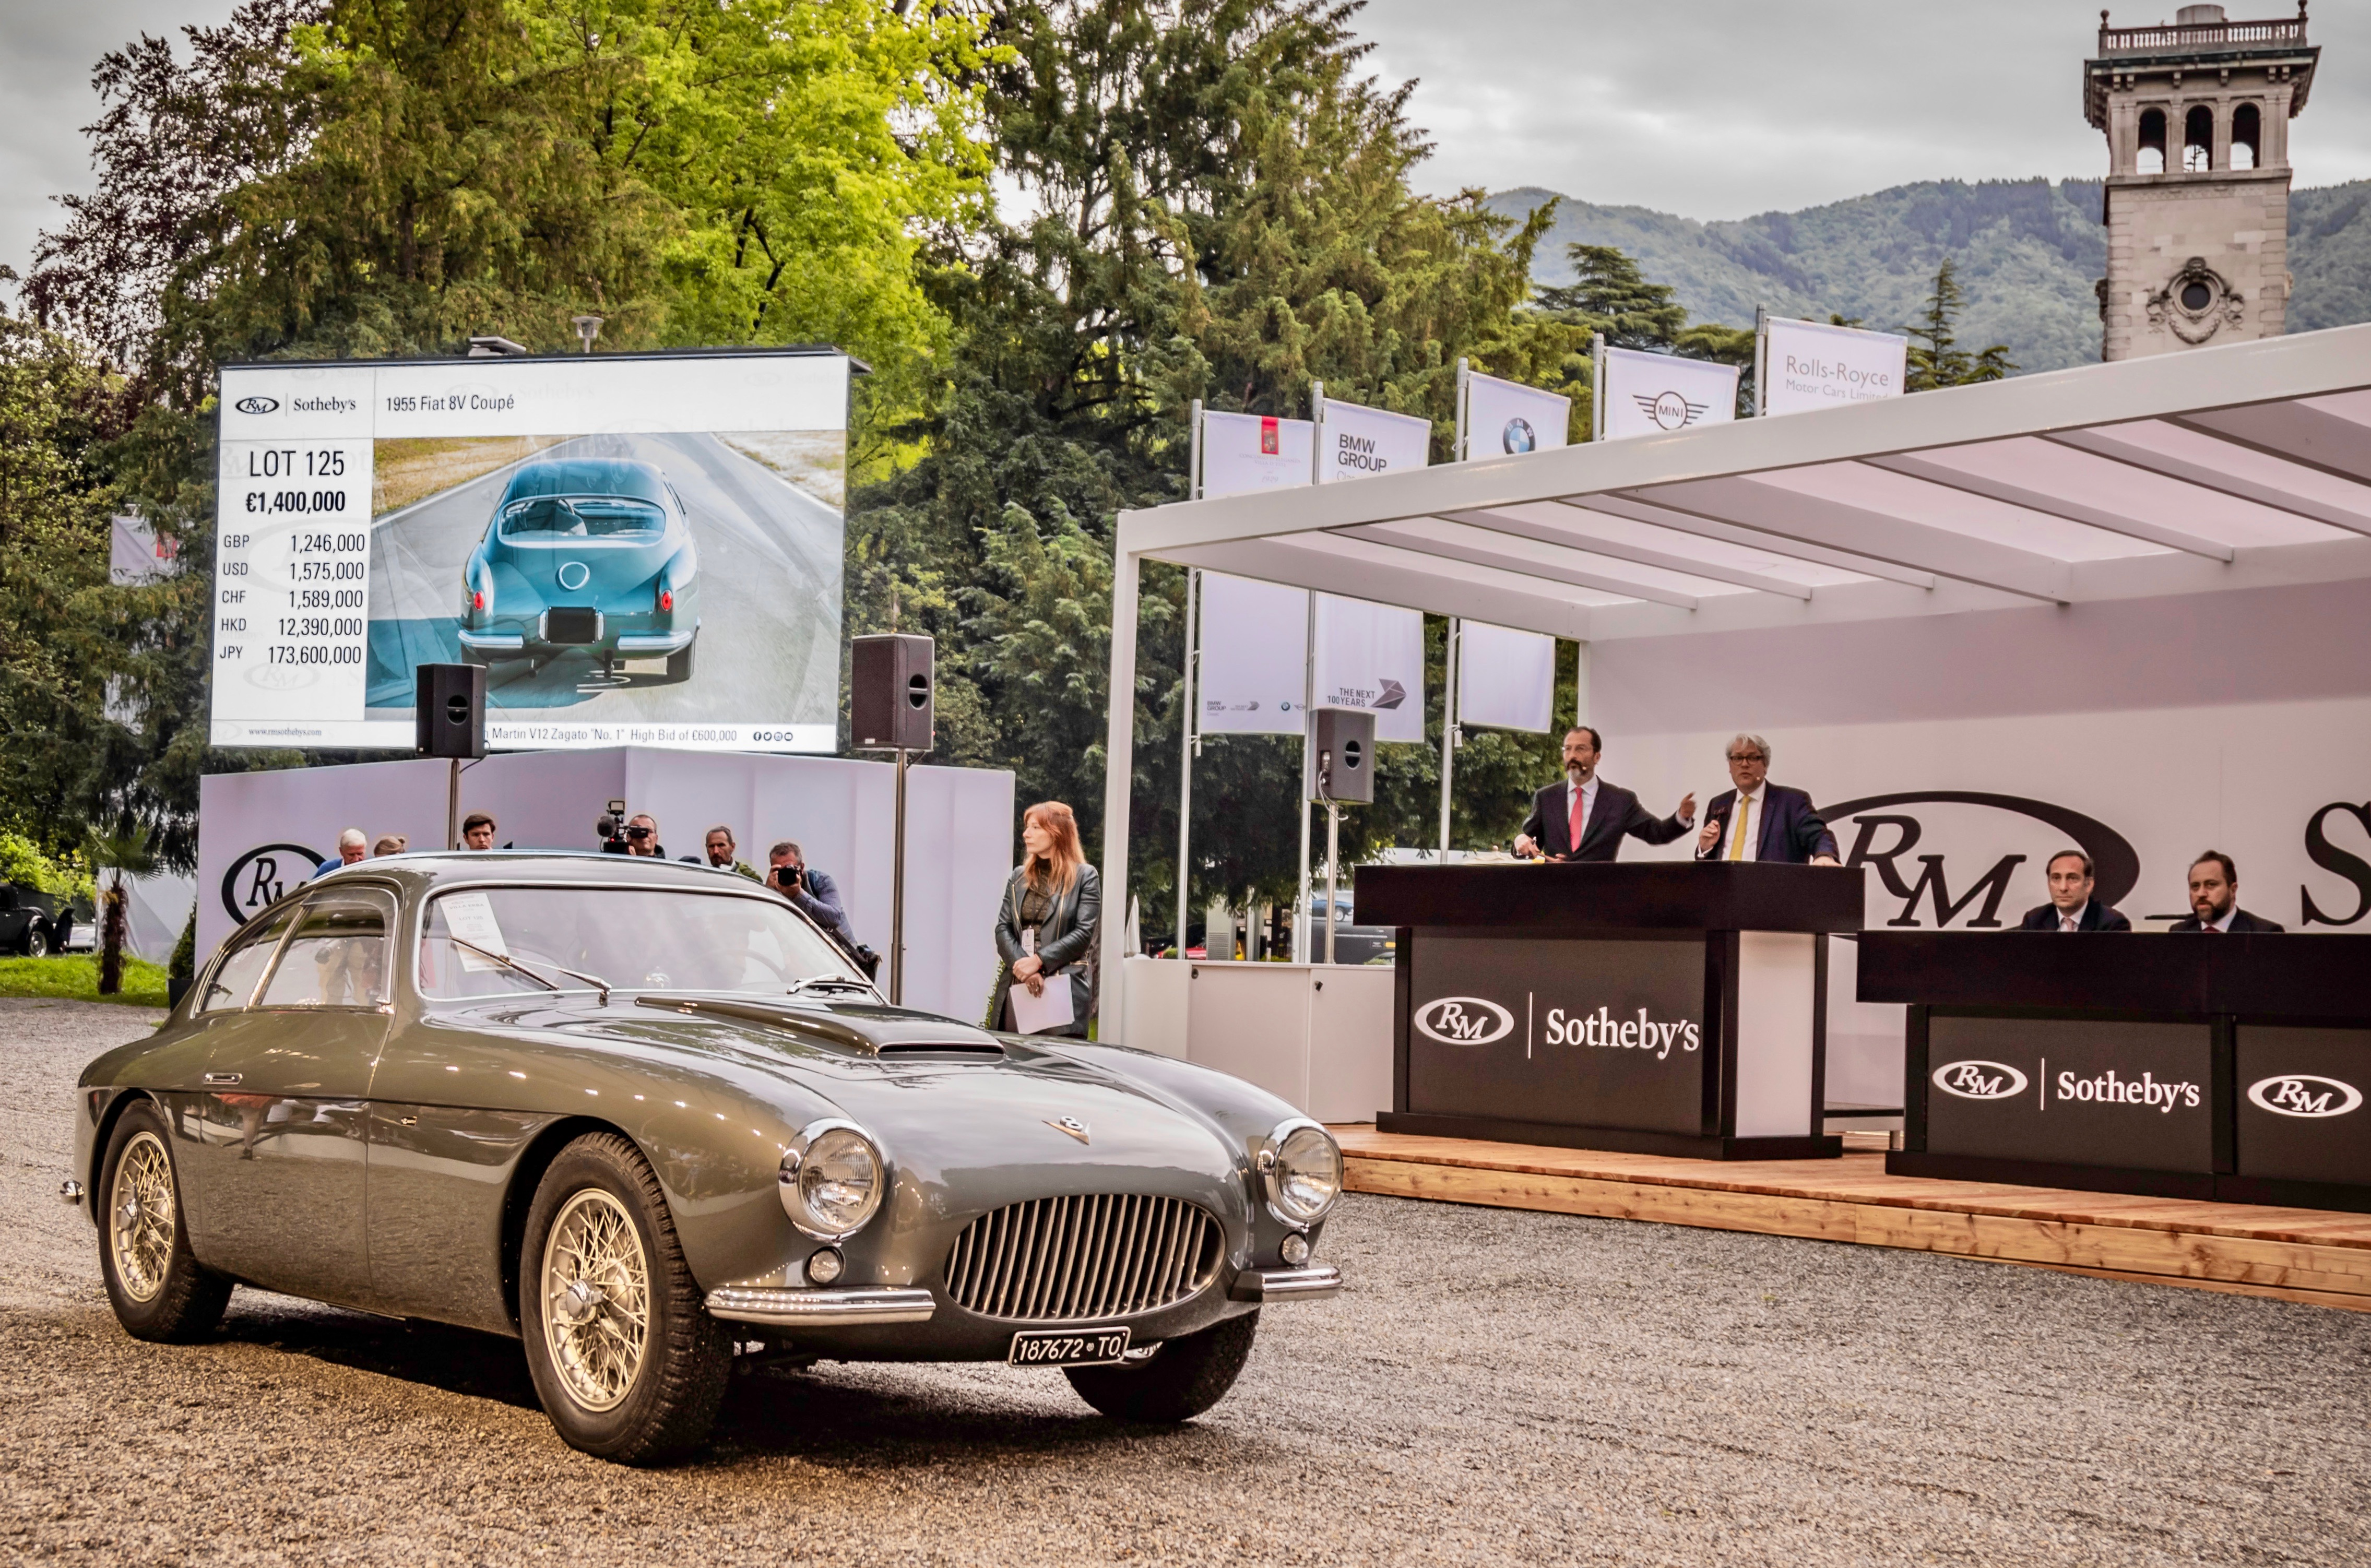 RM Sotheby's, RM Sotheby's auction on Lake Como posts modest sell-through rate, ClassicCars.com Journal